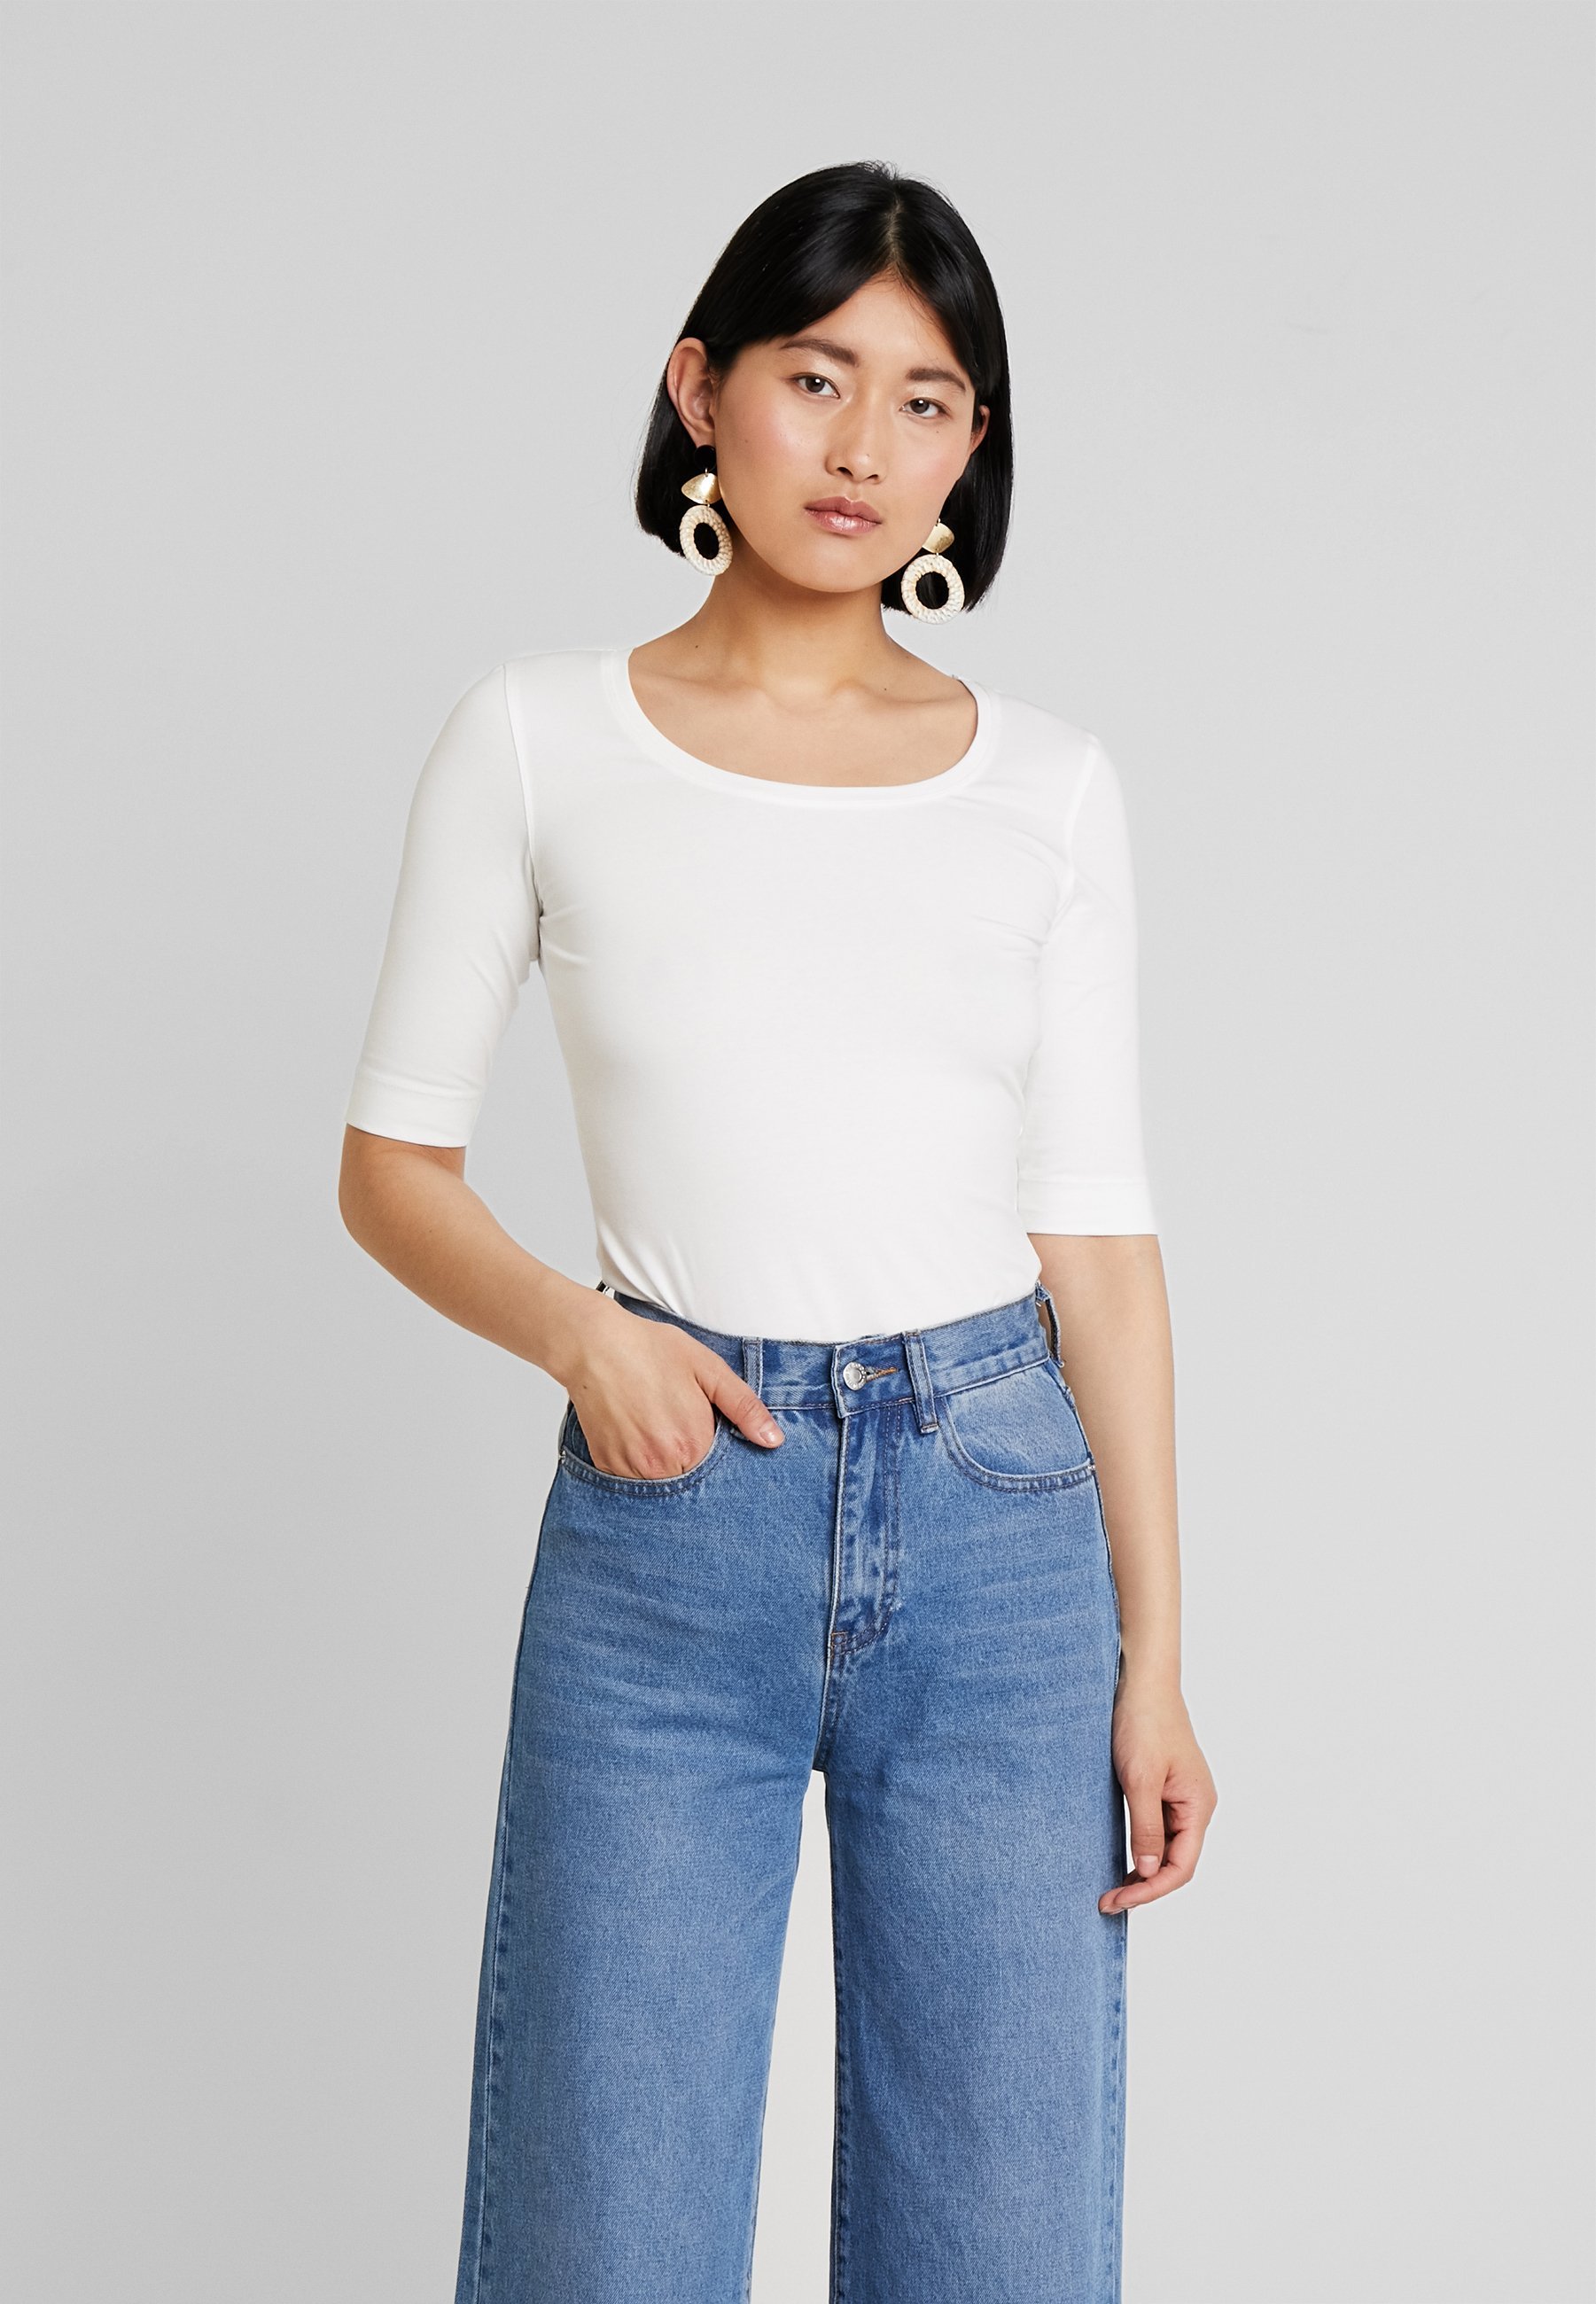 DailyT Opus DailyT Basic Milk Opus Basic Milk Opus shirt shirt DailyT 1cTlFJuK3